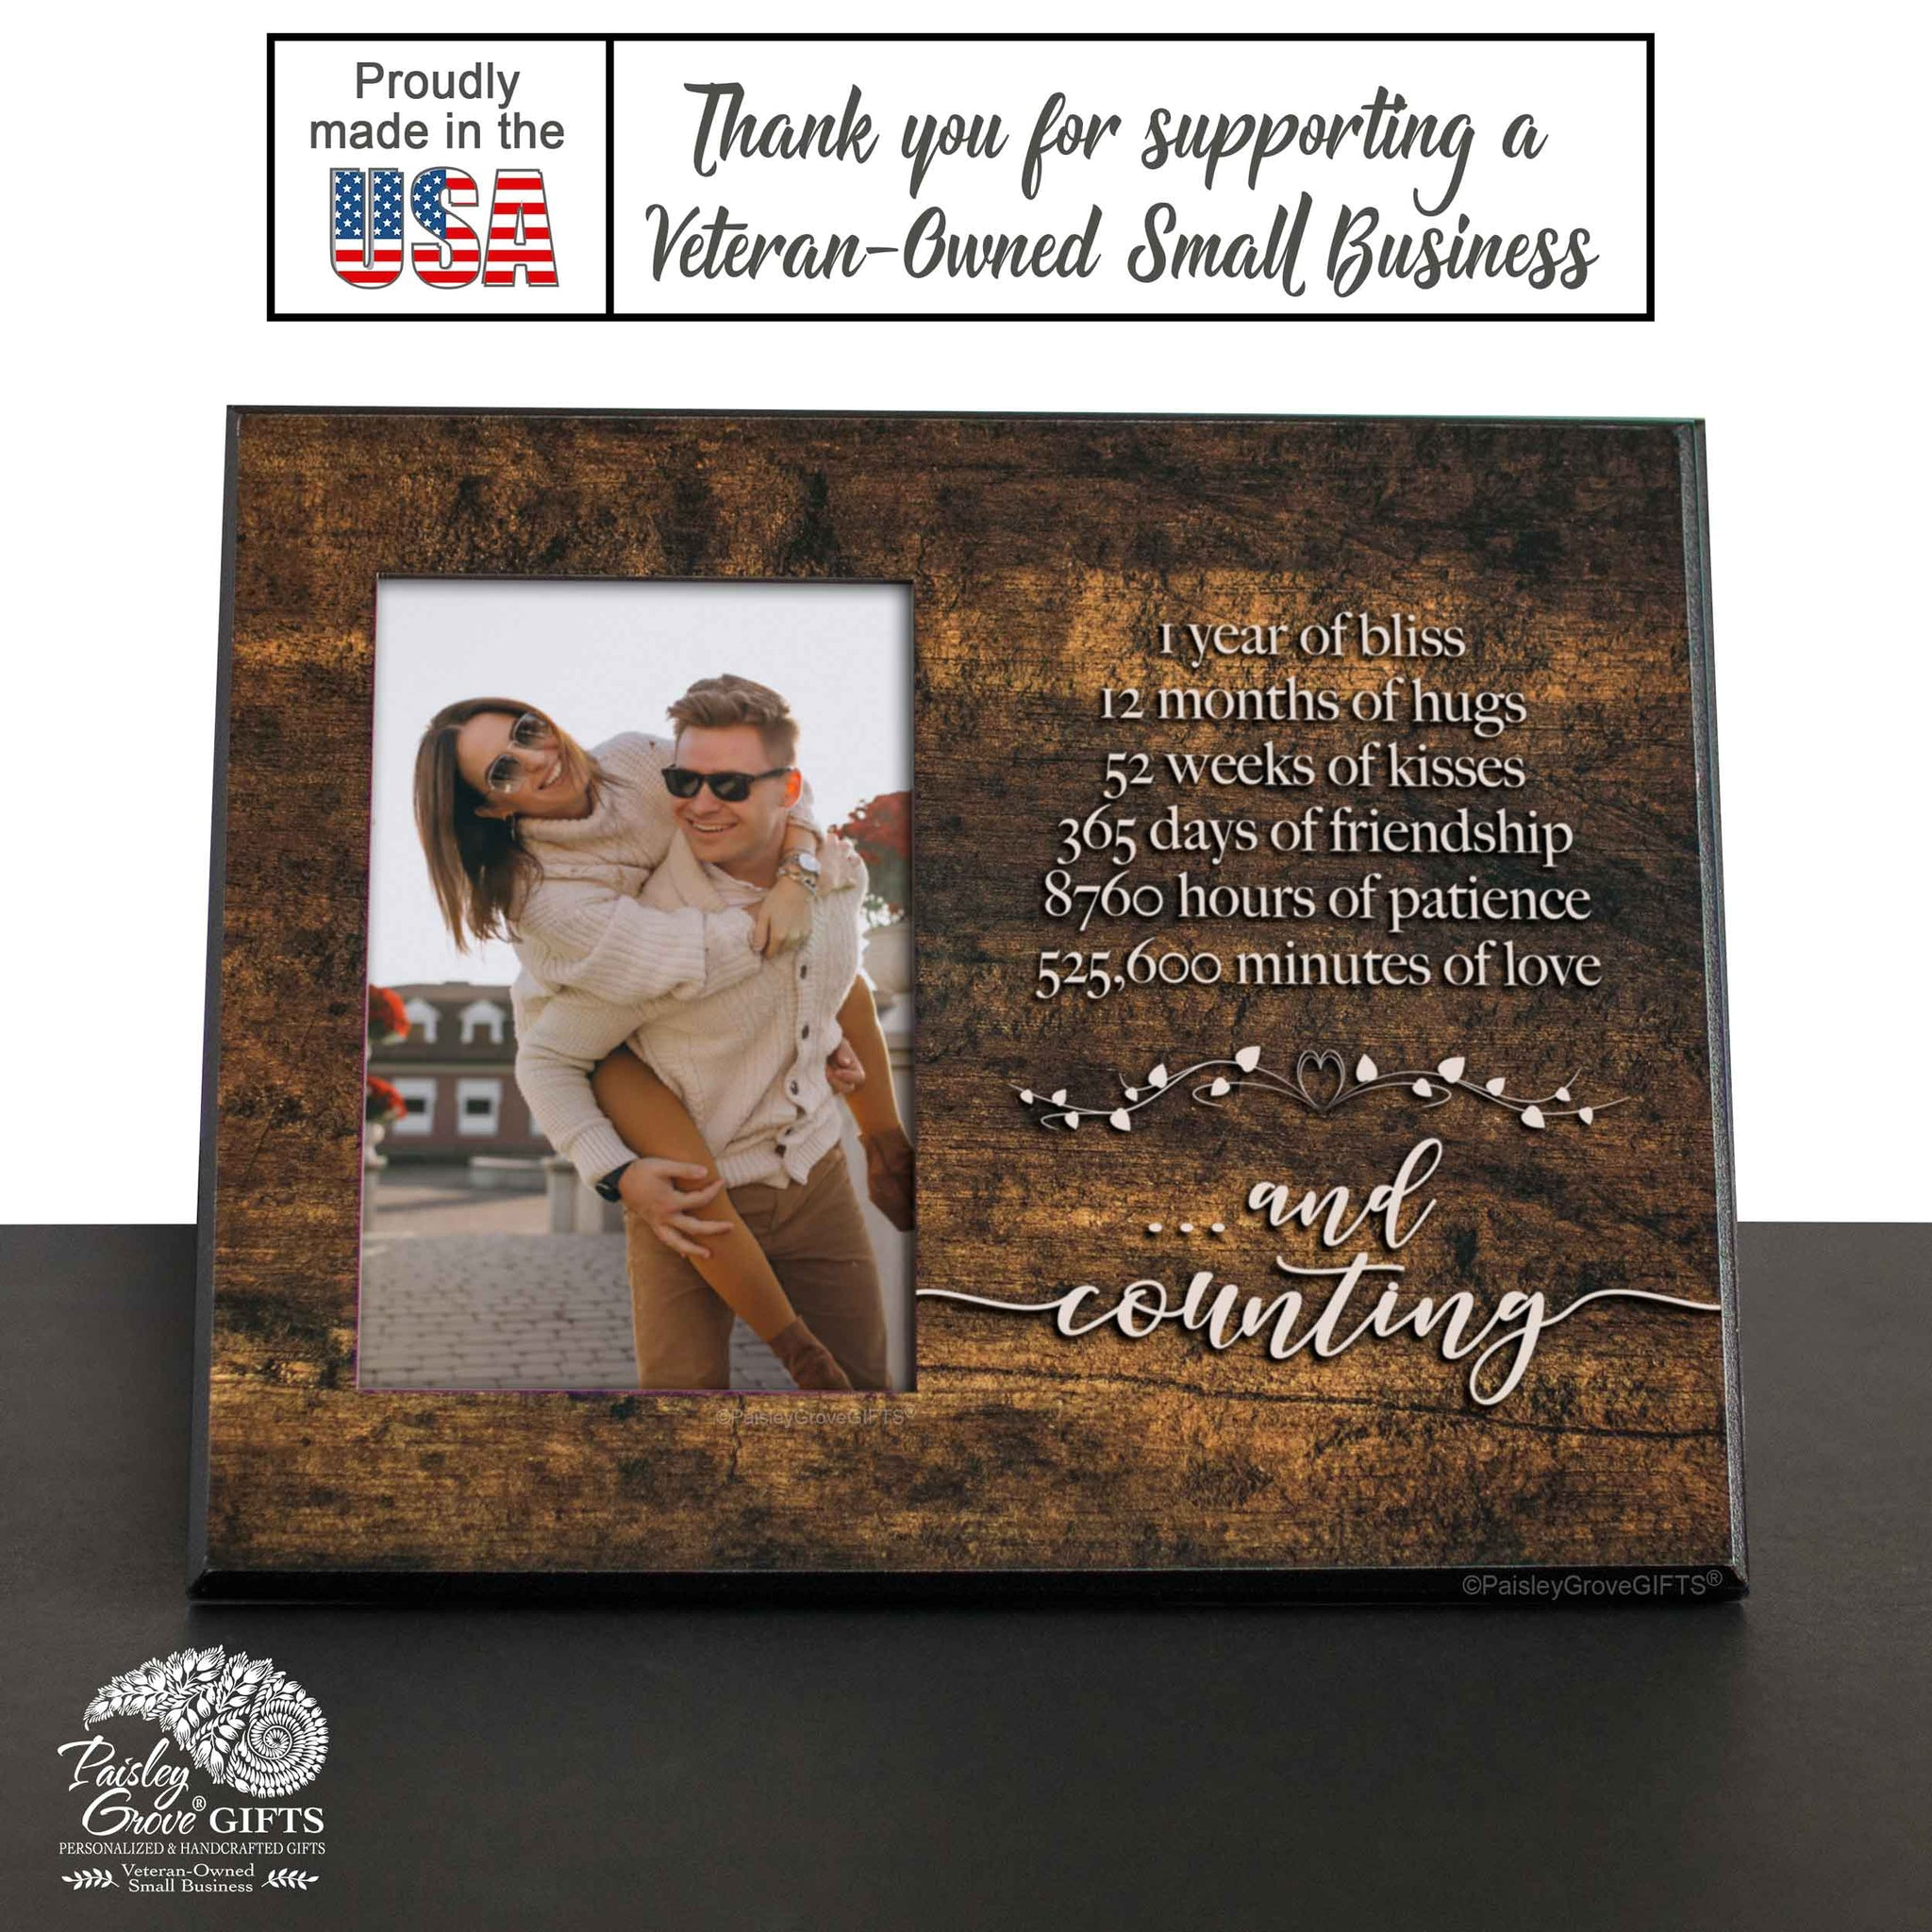 CopyrightPaisleyGroveGIFTS S245a One Year Dating or Wedding Anniversary Gift Frame is made in the USA